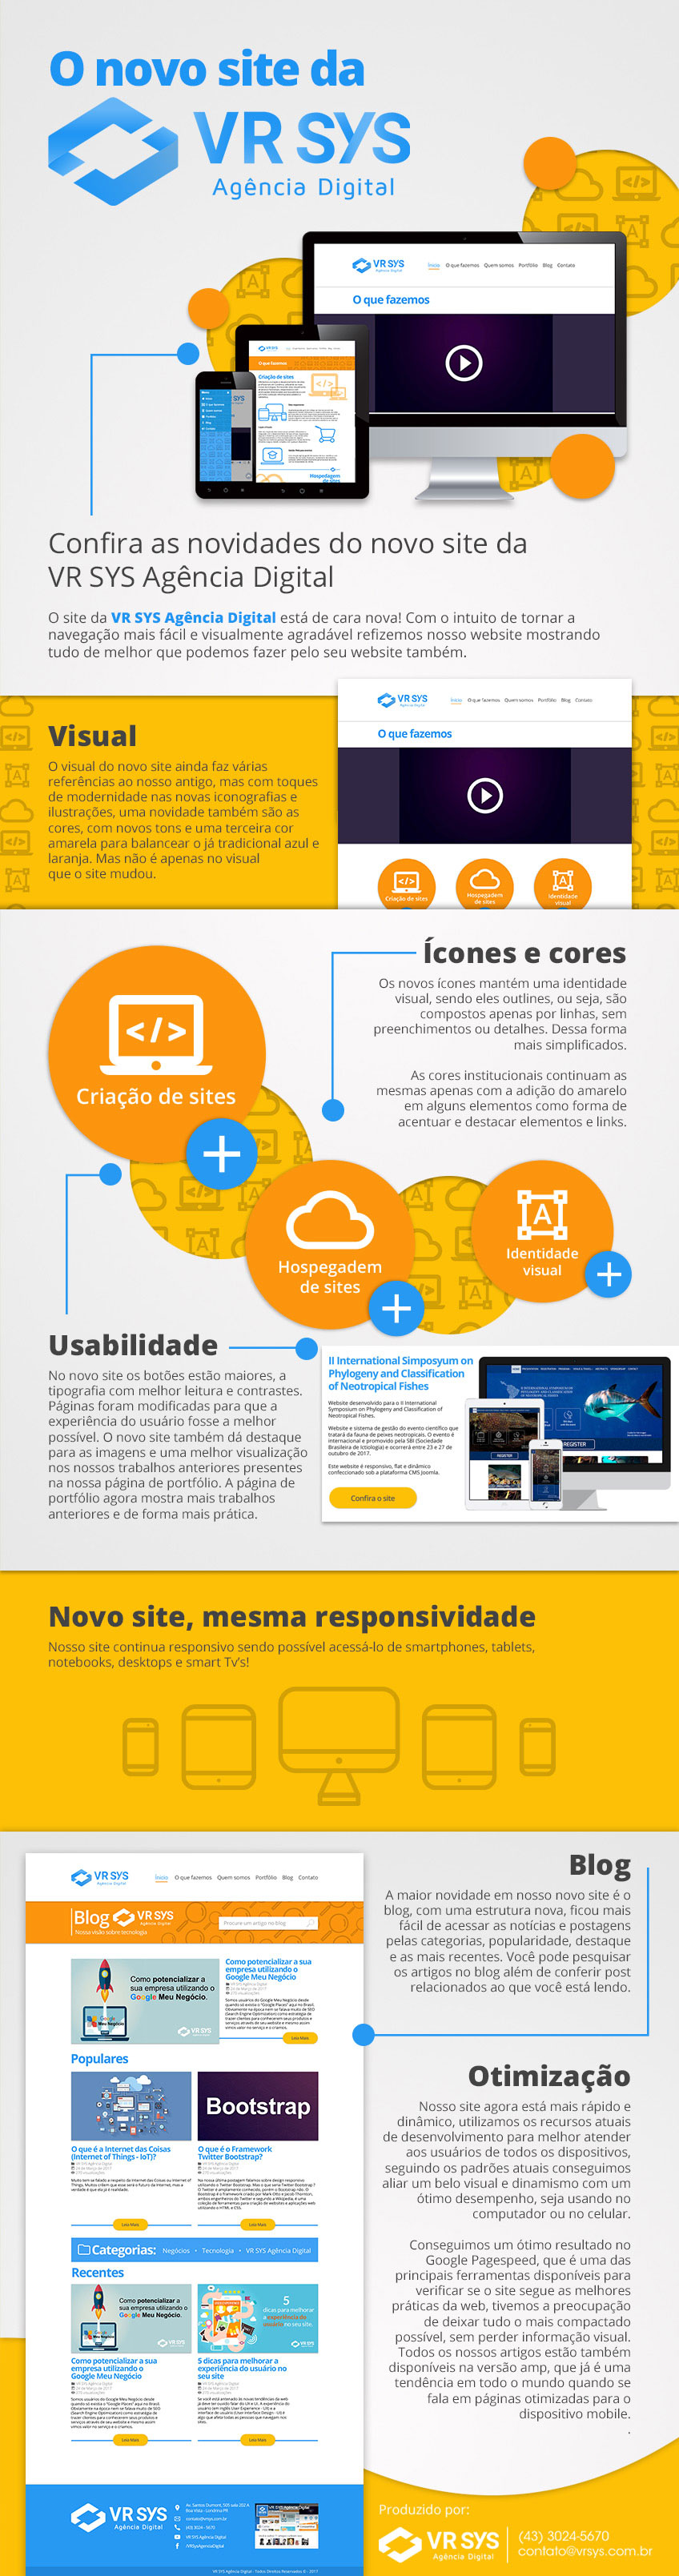 as novidades no novo site da VR SYS Agencia Digital infografico